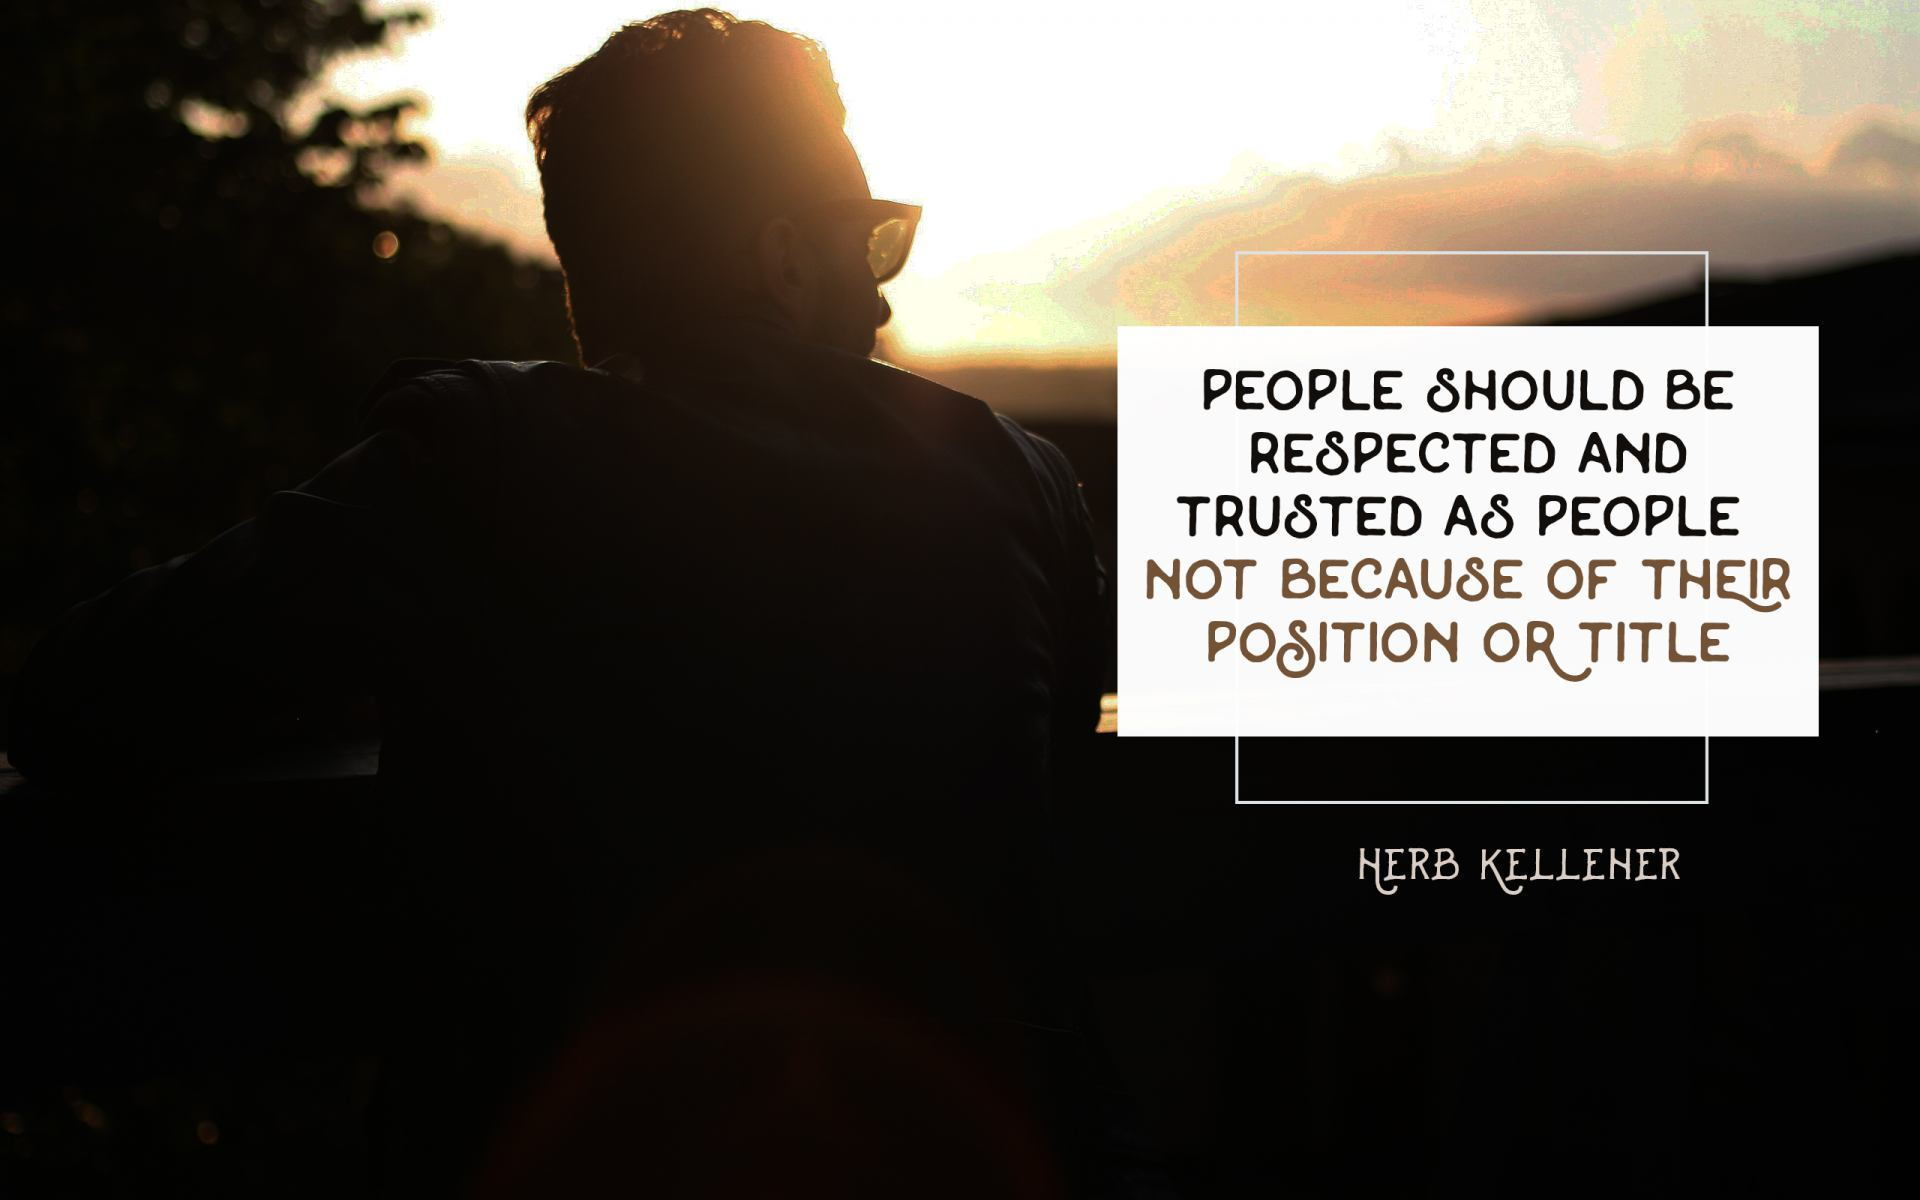 """People Should Be Respected and Trusted as People Not Because of Their Position or Title"" Herb Kellener! [1920×1200]"